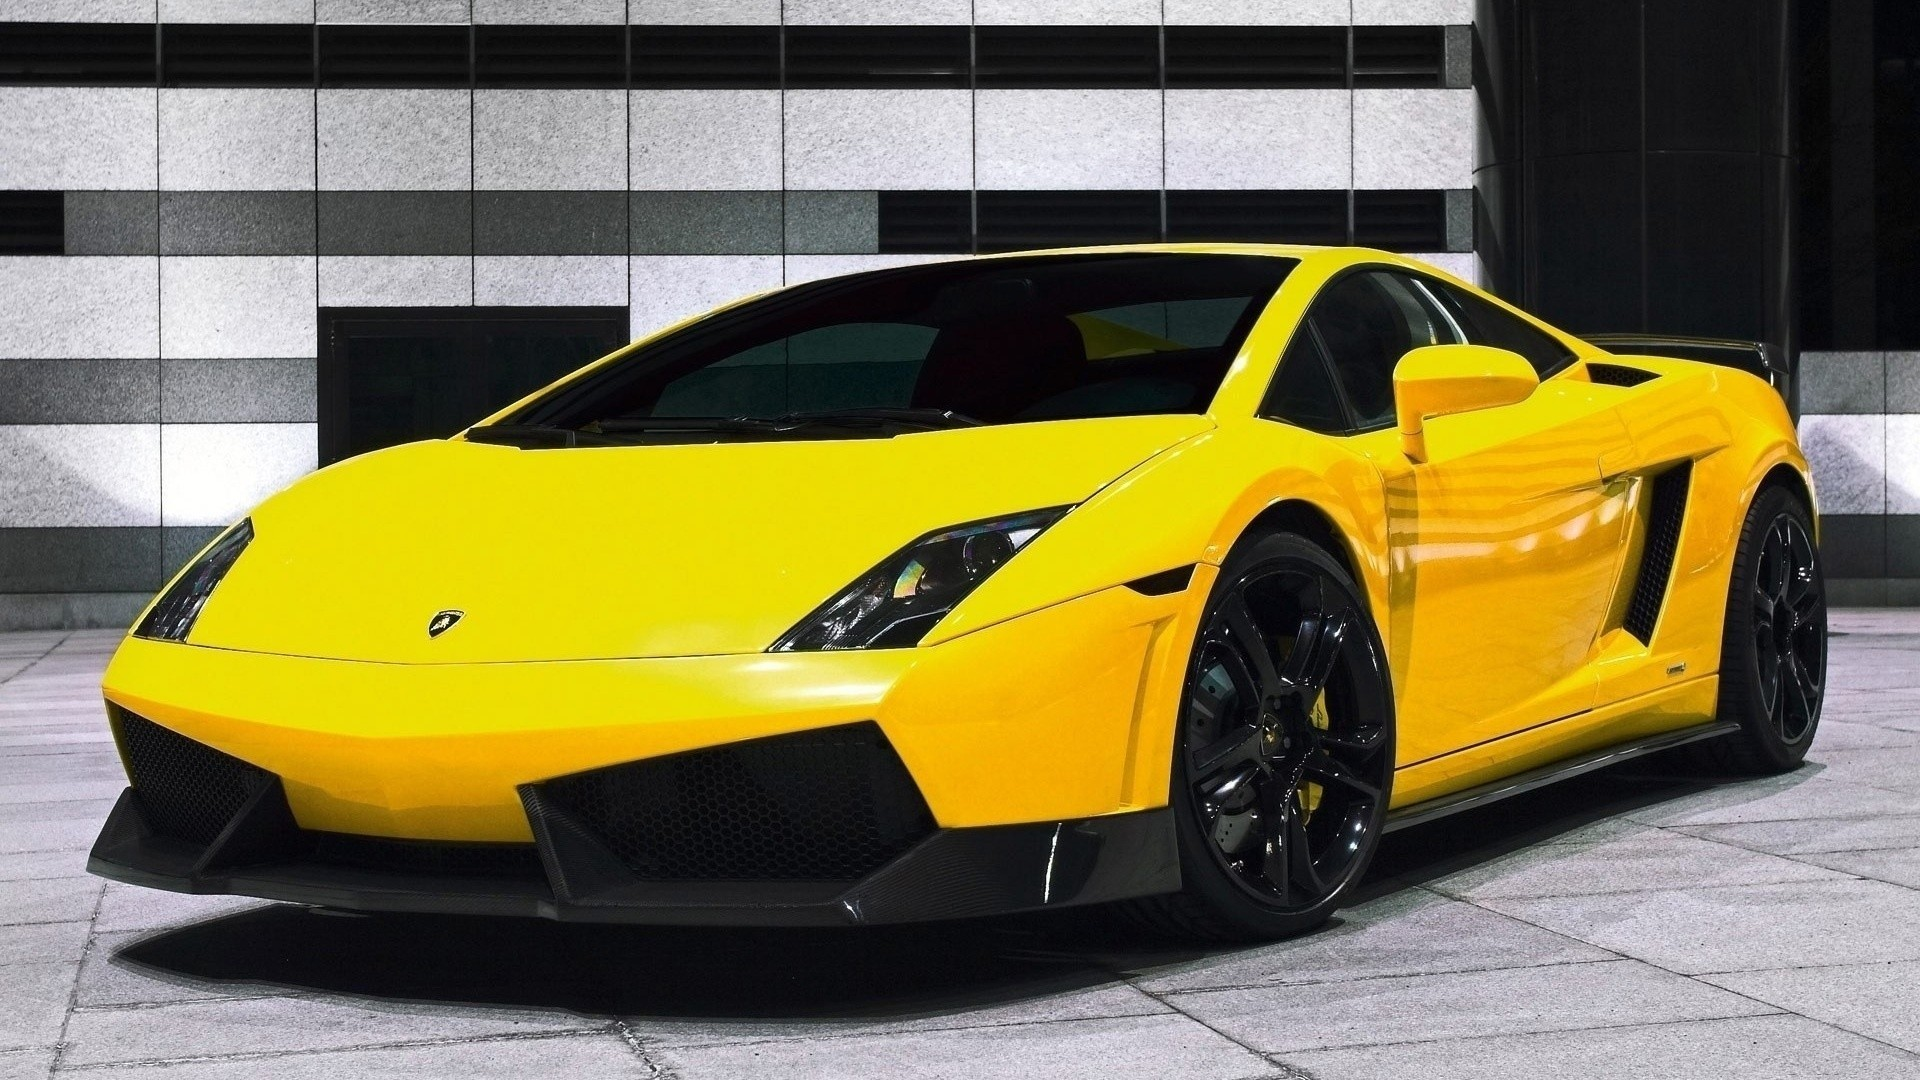 cars Supercars lamborghini murcielago HD Wallpaper